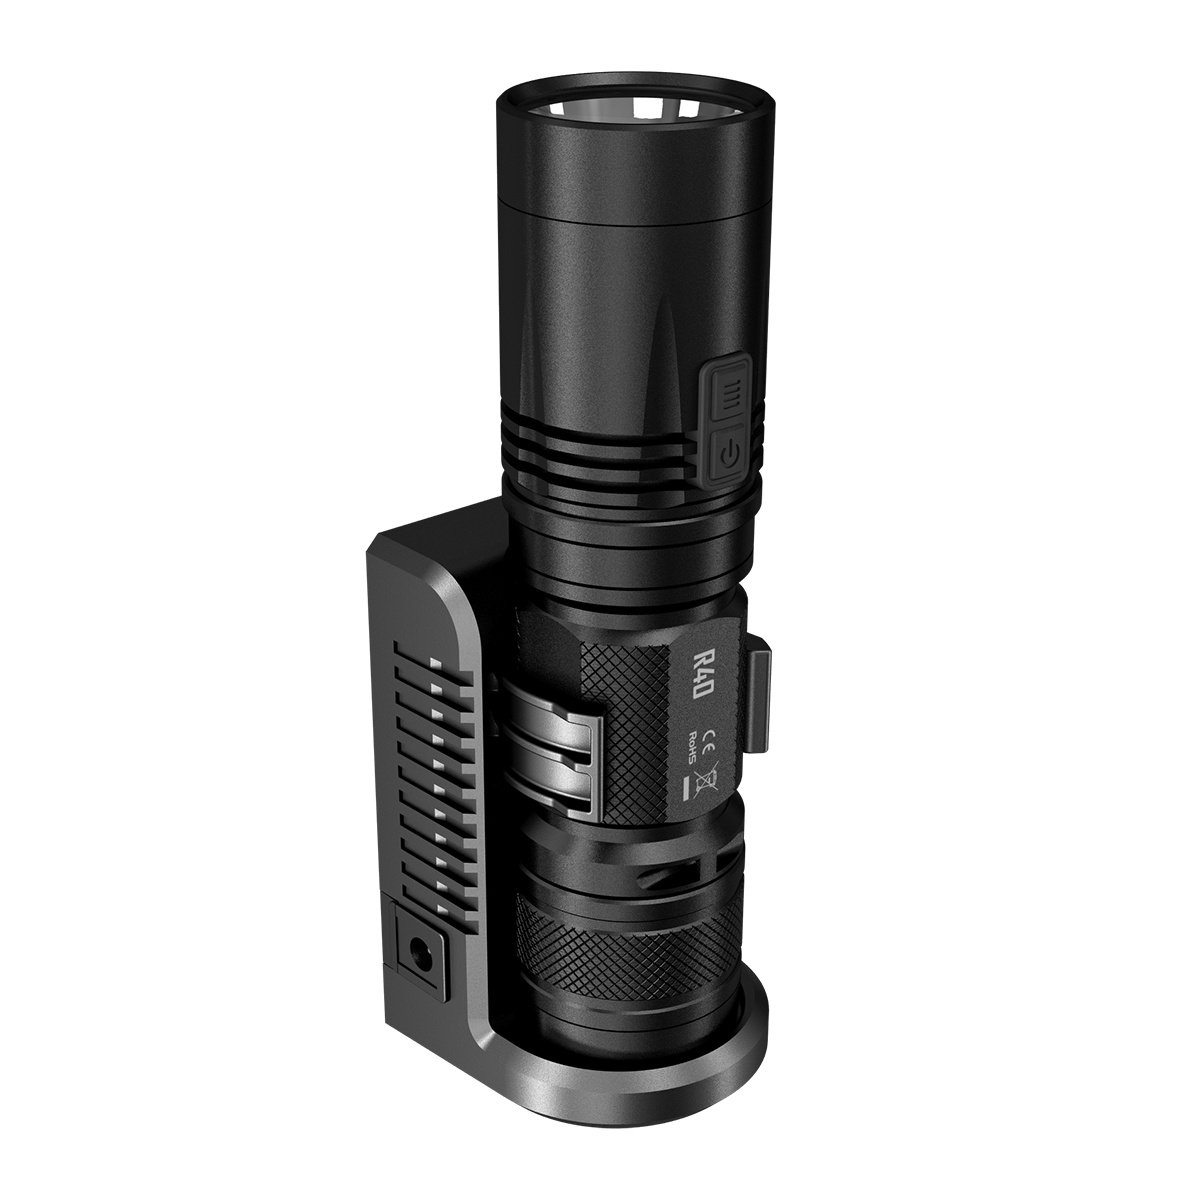 Manbuy NITECORE 1000 lumens XP-L HI LED Rechargeable White light With Battery Gear Outdoor Camping Search R40 Flash Light Hand lamp by Nitecore (Image #6)